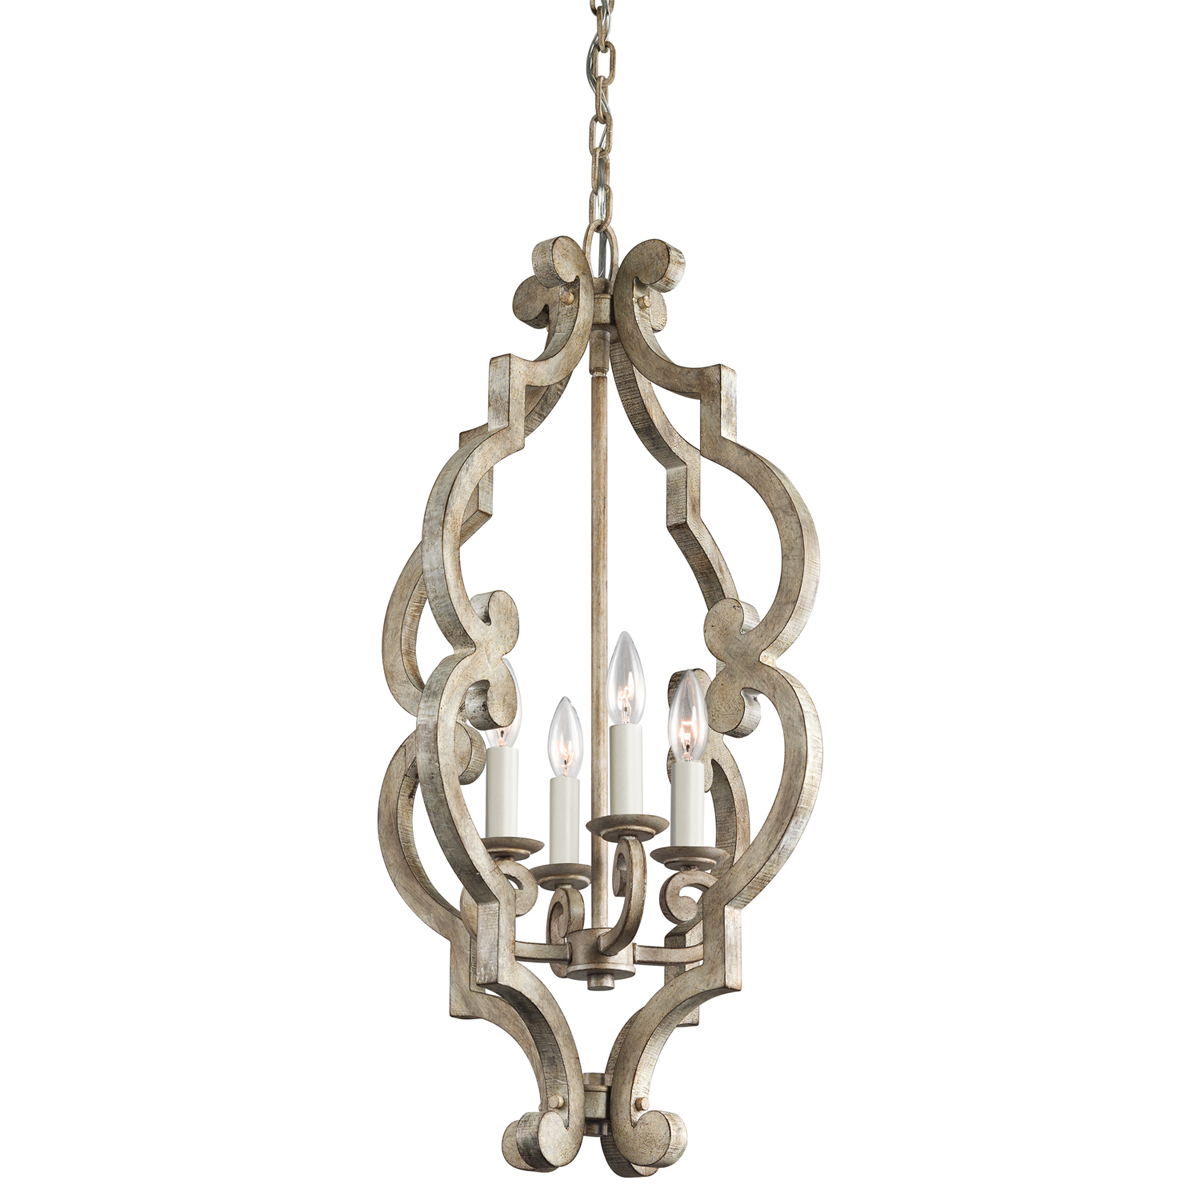 Shabby Chic Pendant Lighting Home Decor